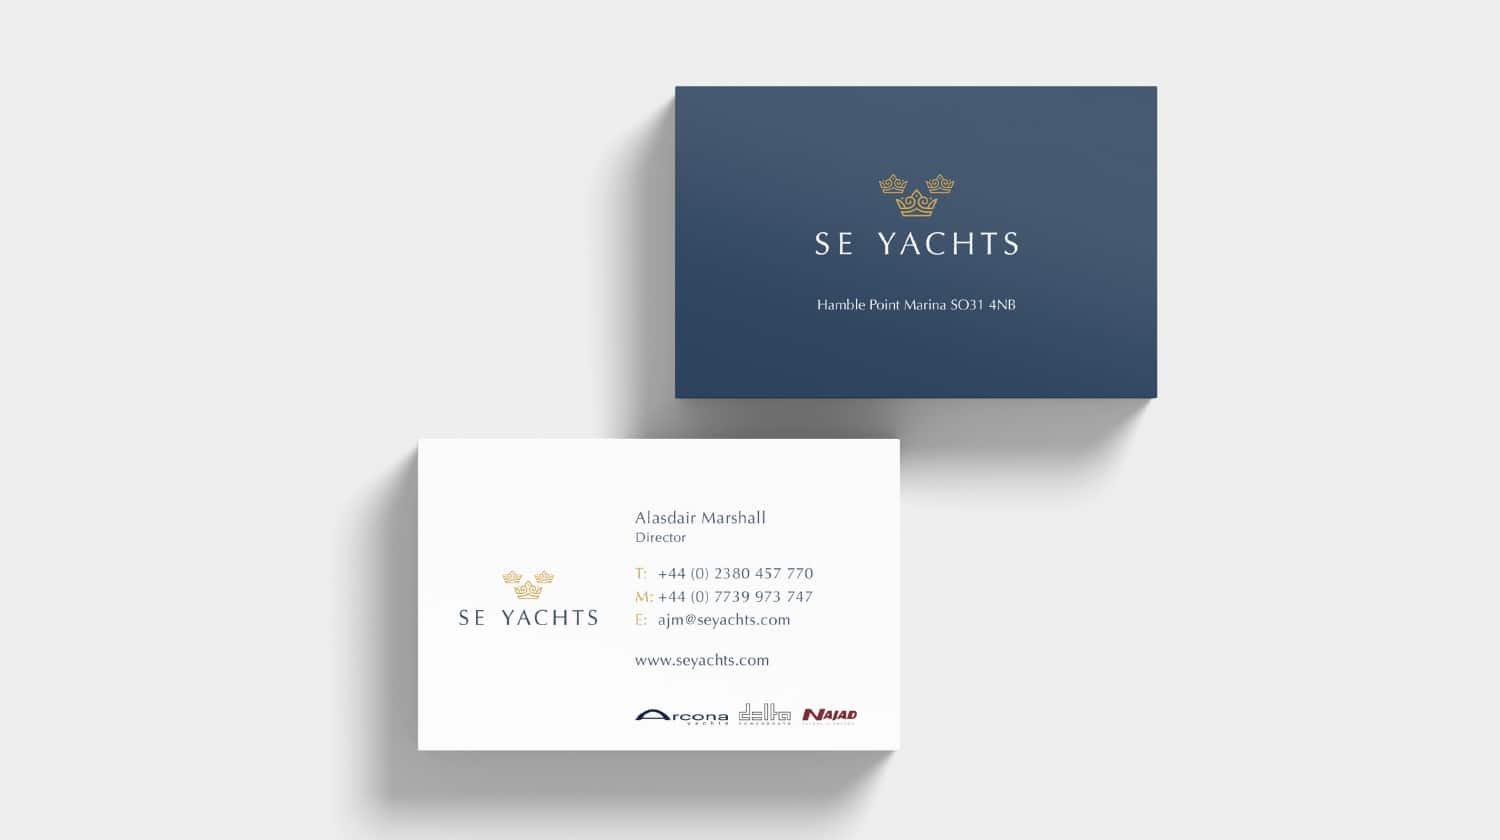 SE Yachts Business Cards Front and Back View